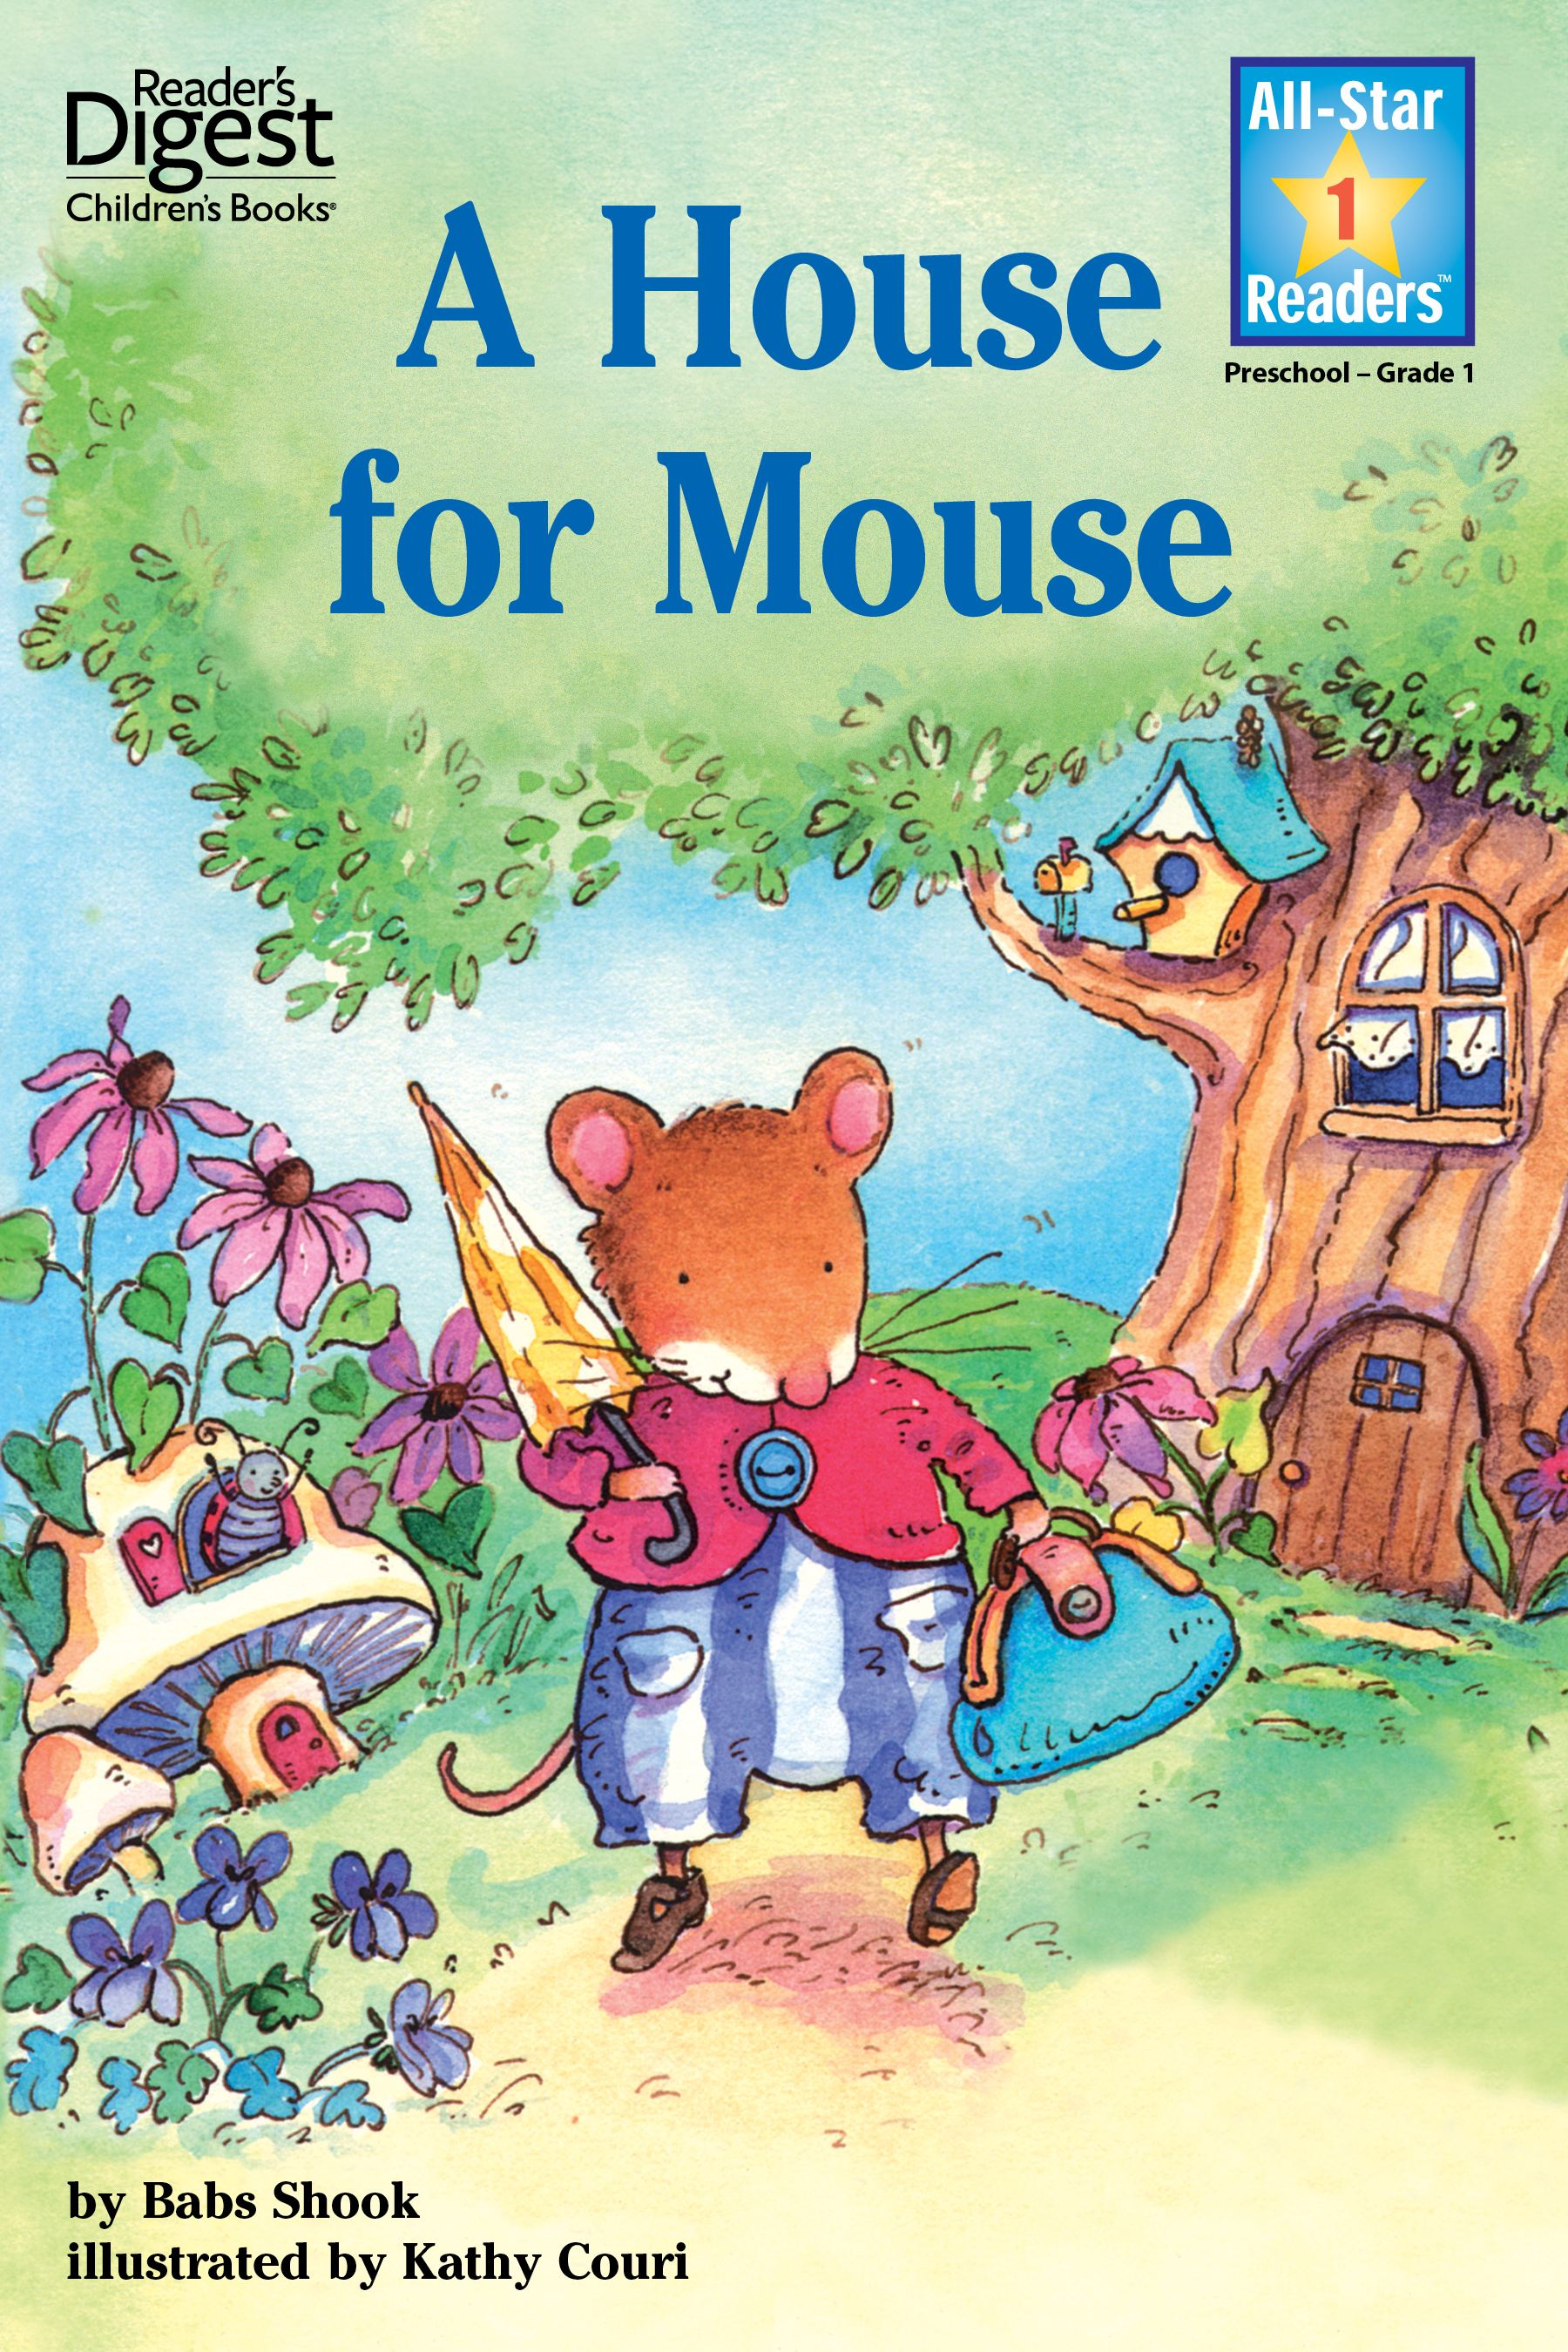 A House for Mouse (Reader's Digest) (All-Star Readers)